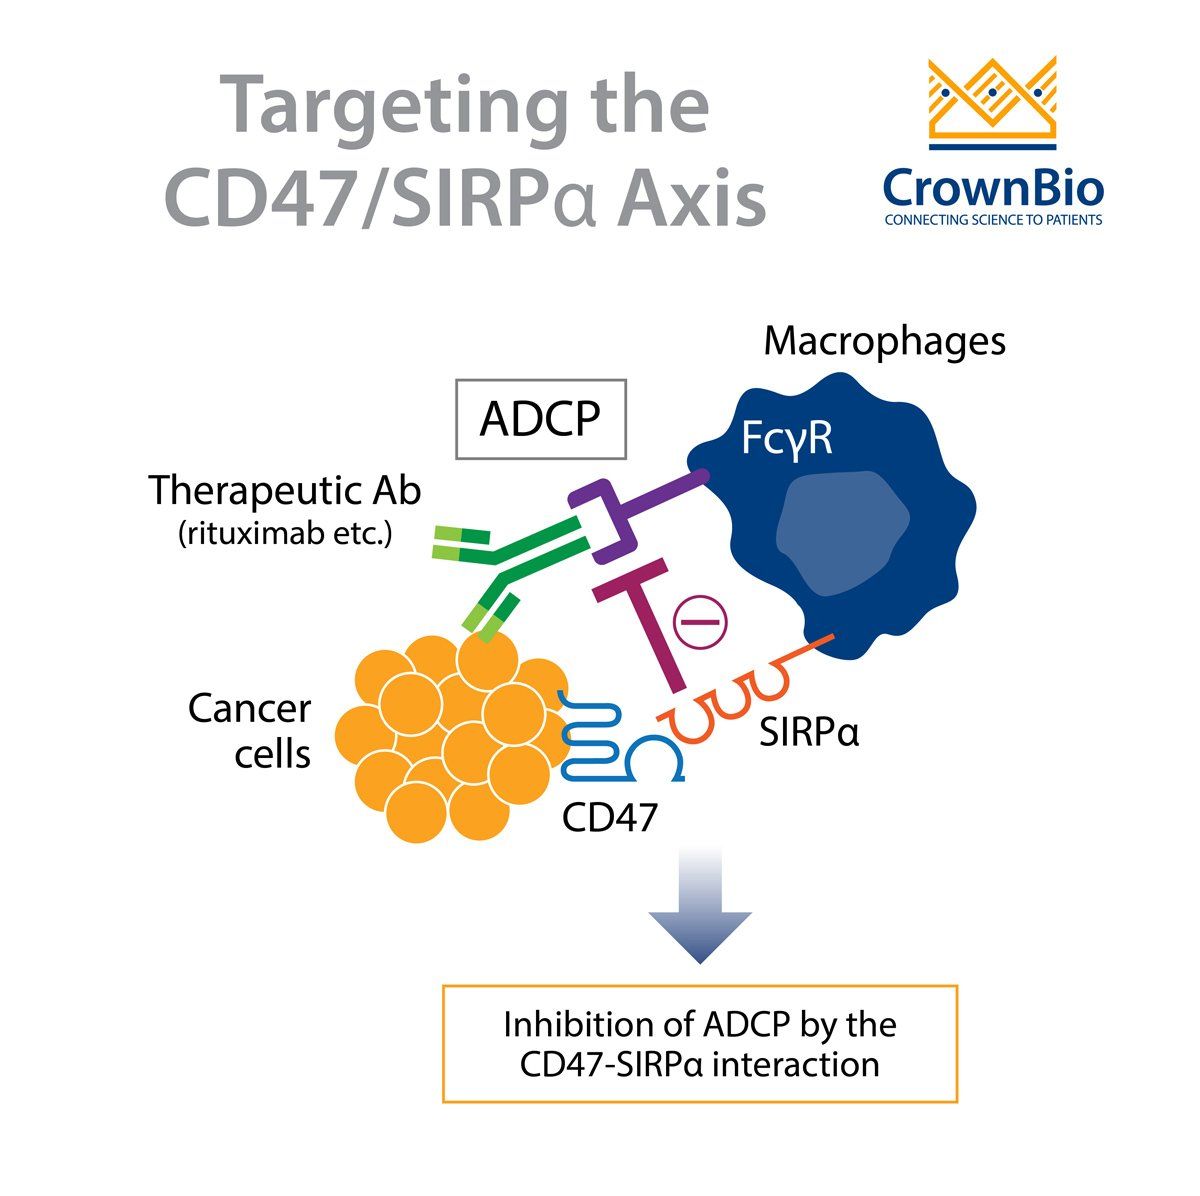 Targeting the CD47/SIRPɑ Axis in Cancer Immunotherapy